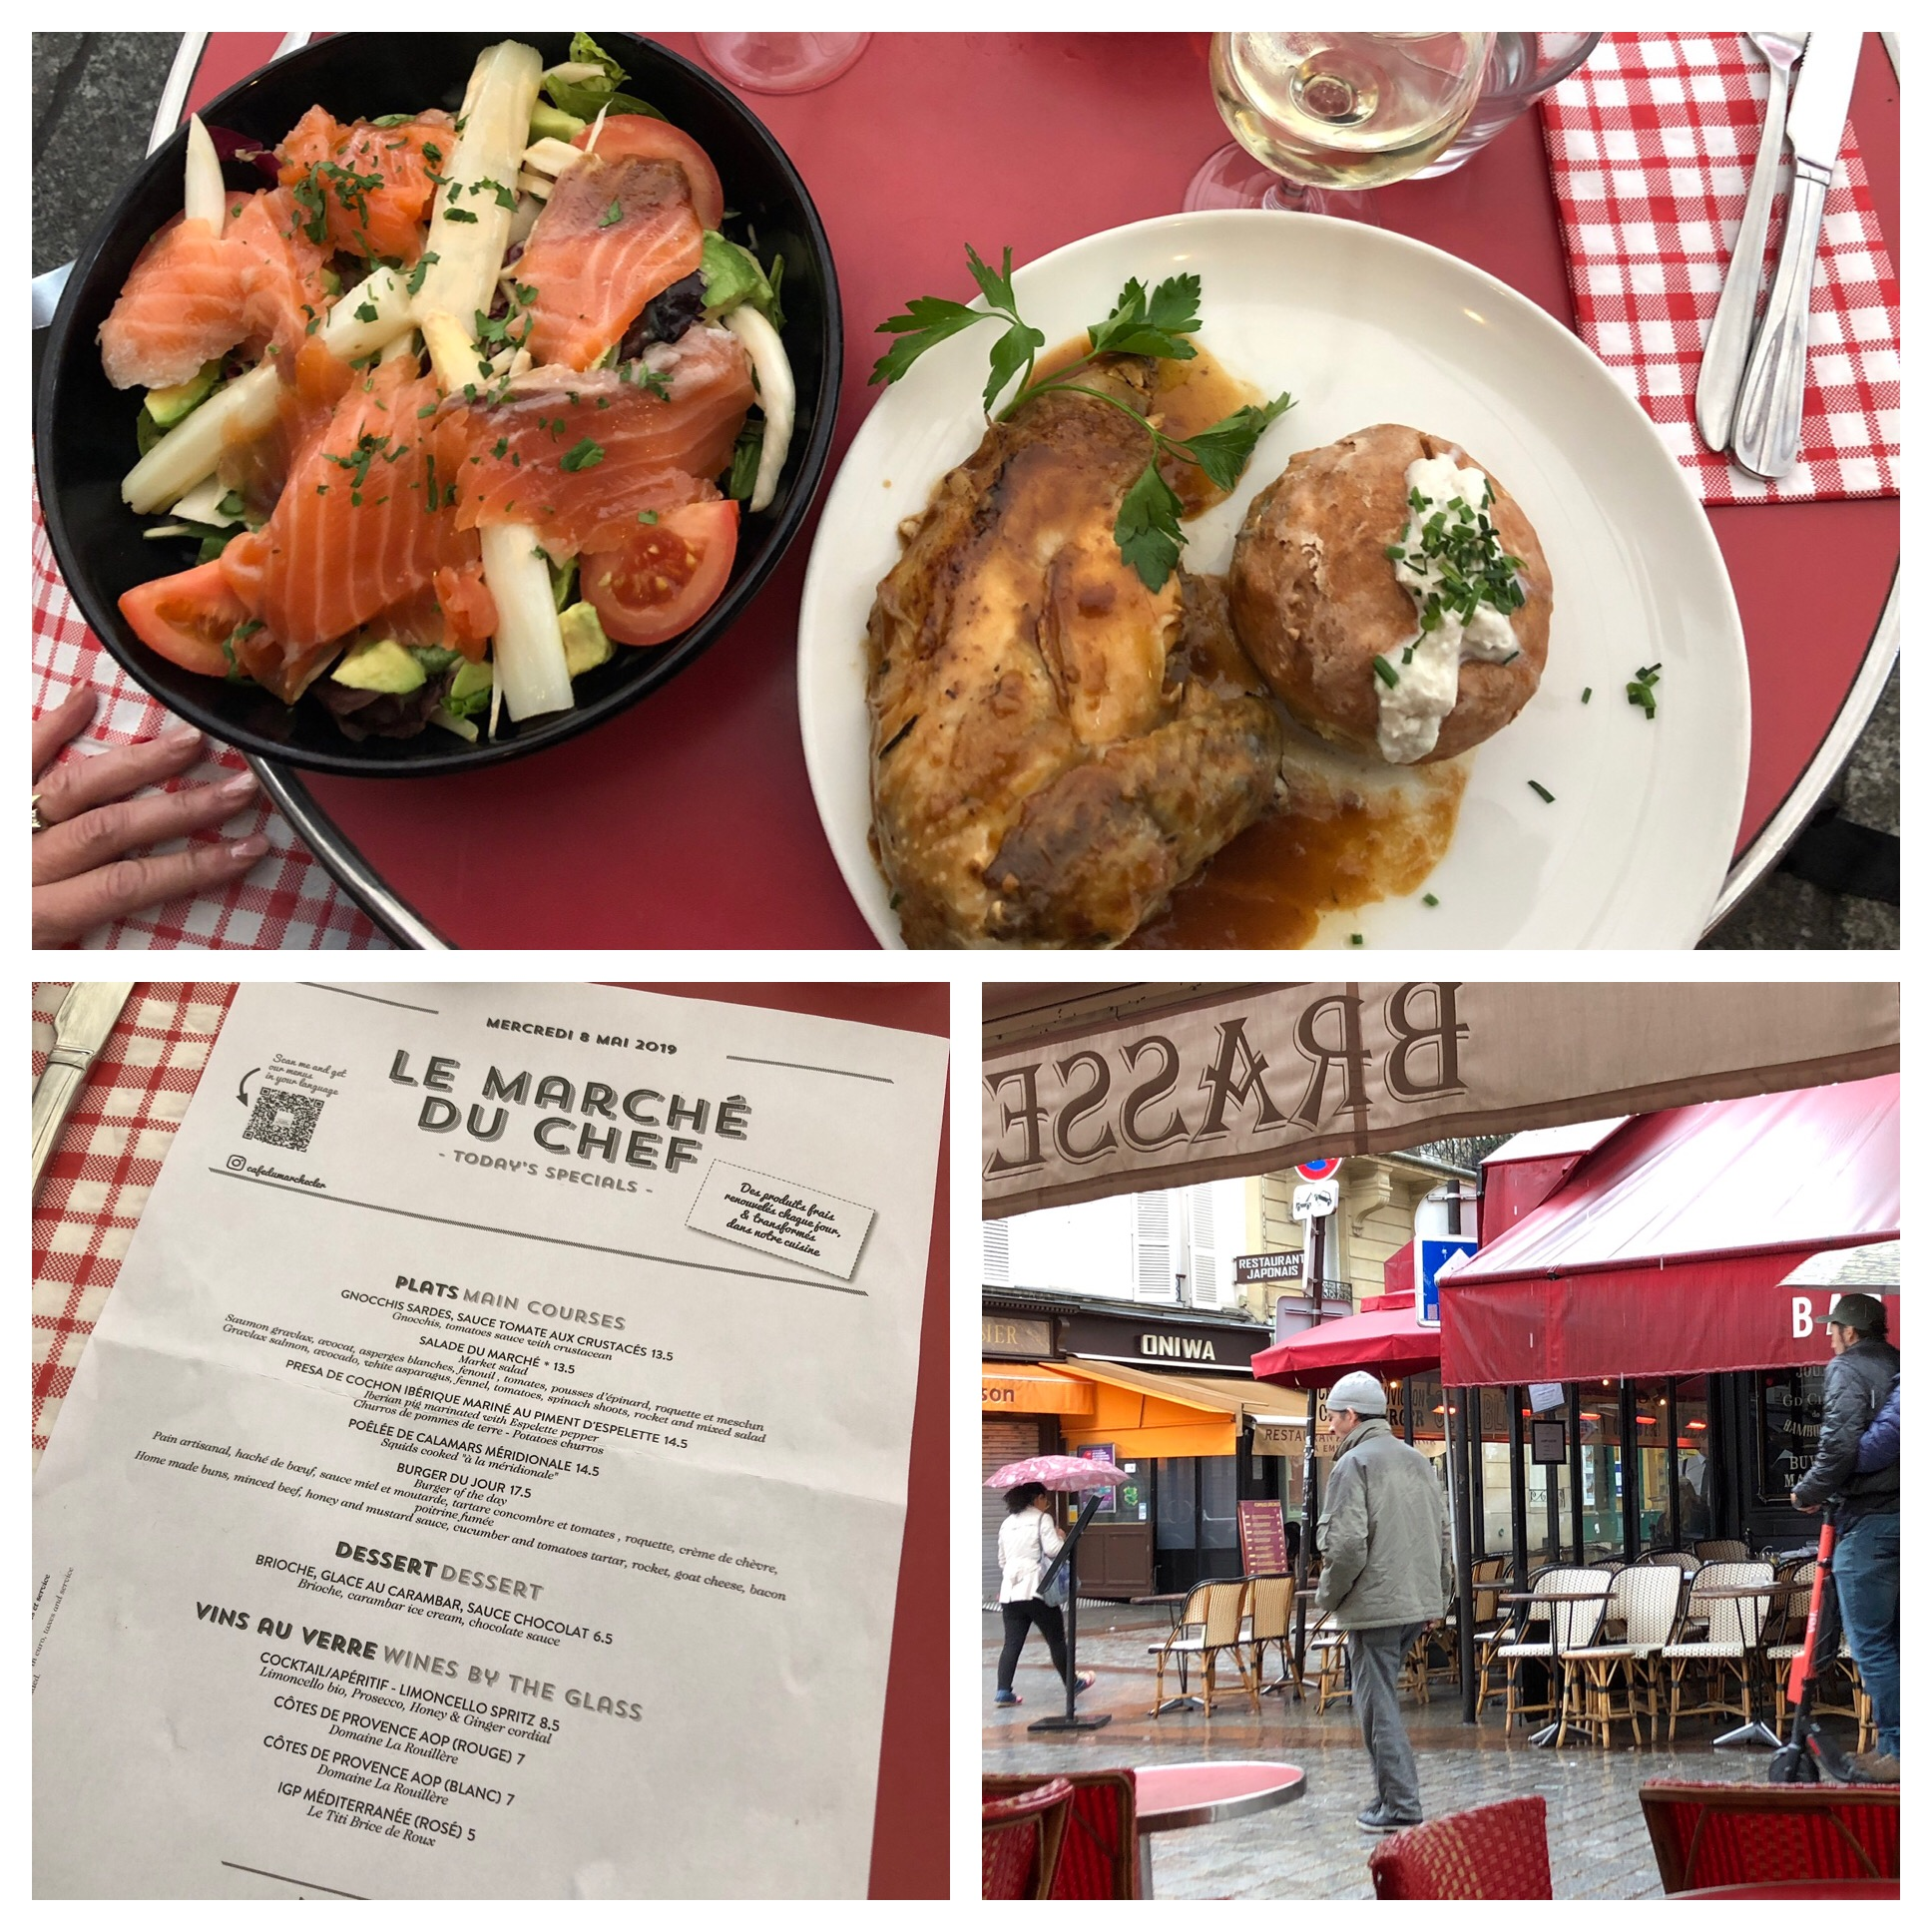 A smoked salmon salad with white asparagus for Julie and my favorite French chicken and a potato in some kind of a pastry encasement. We did sit outside even though it was raining. Those awnings and heaters make it possible.